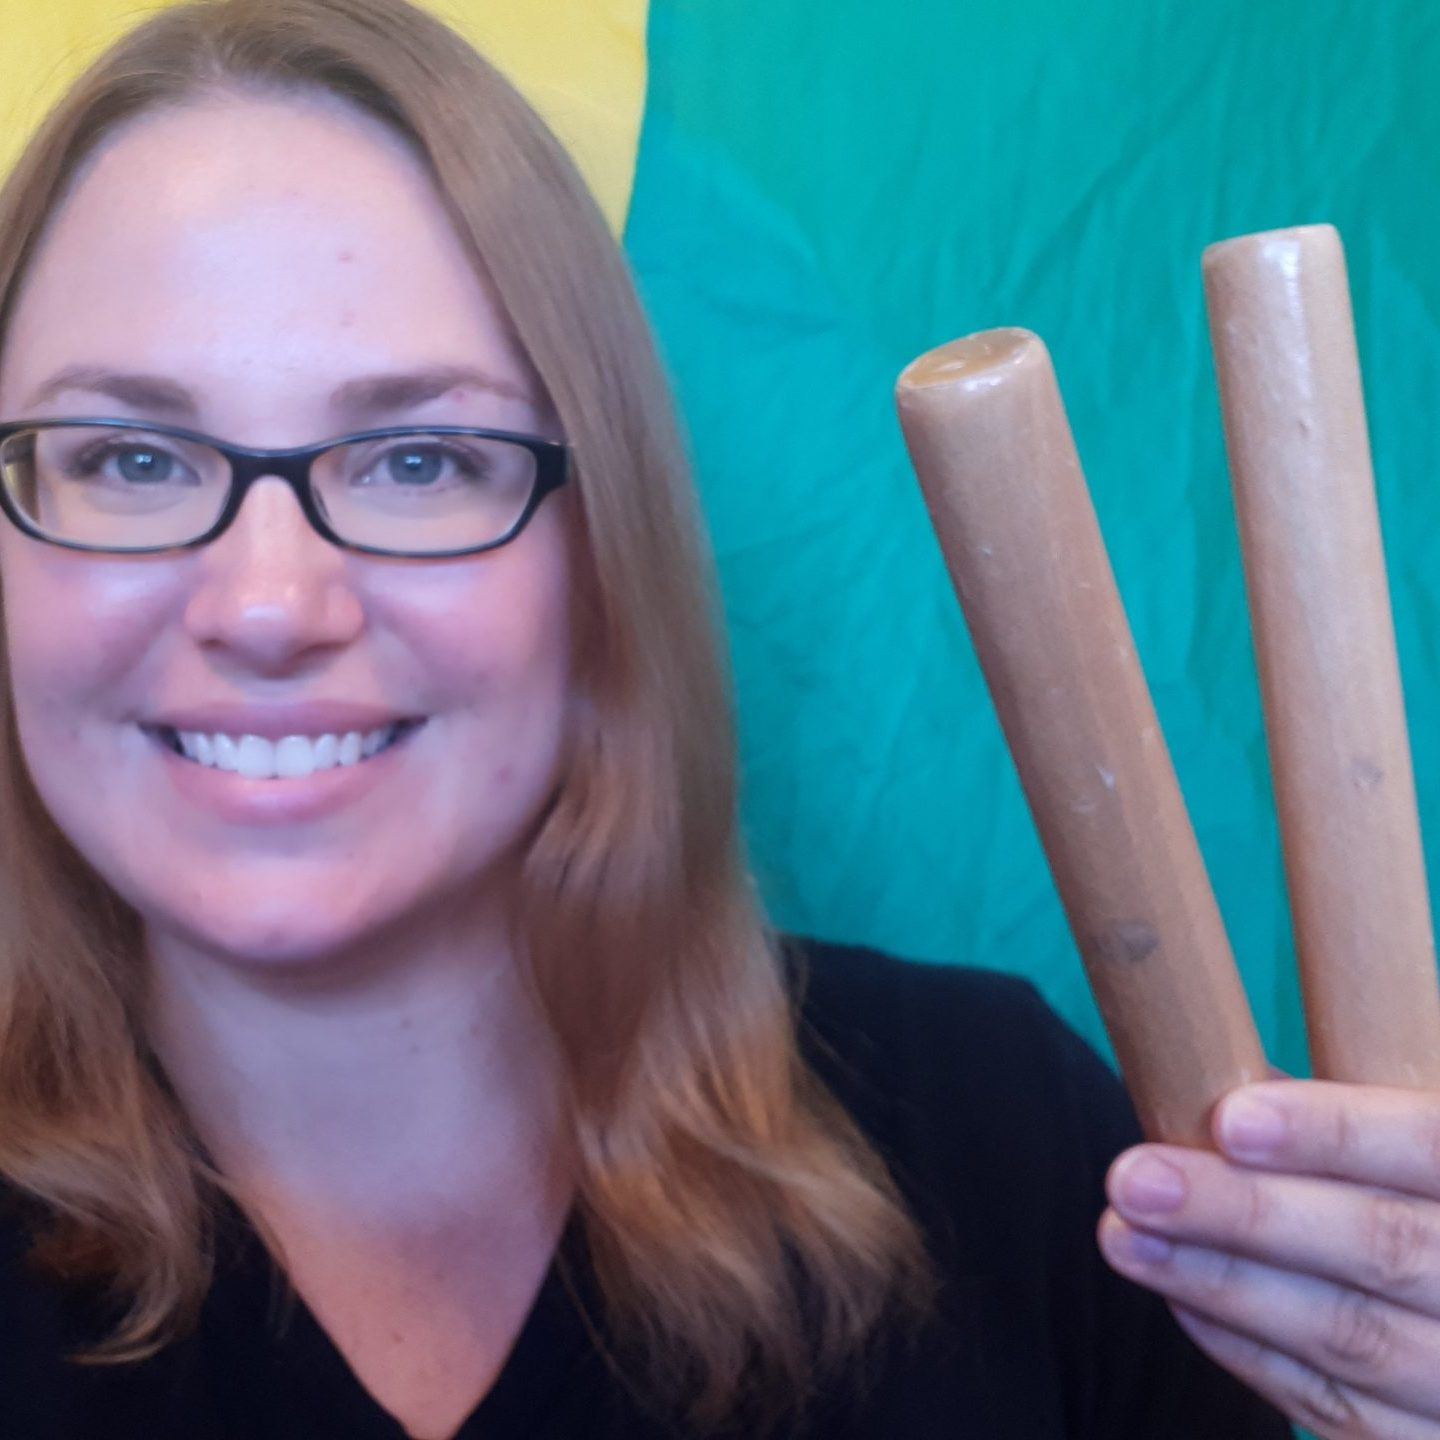 Sing Along: Tapping Sticks